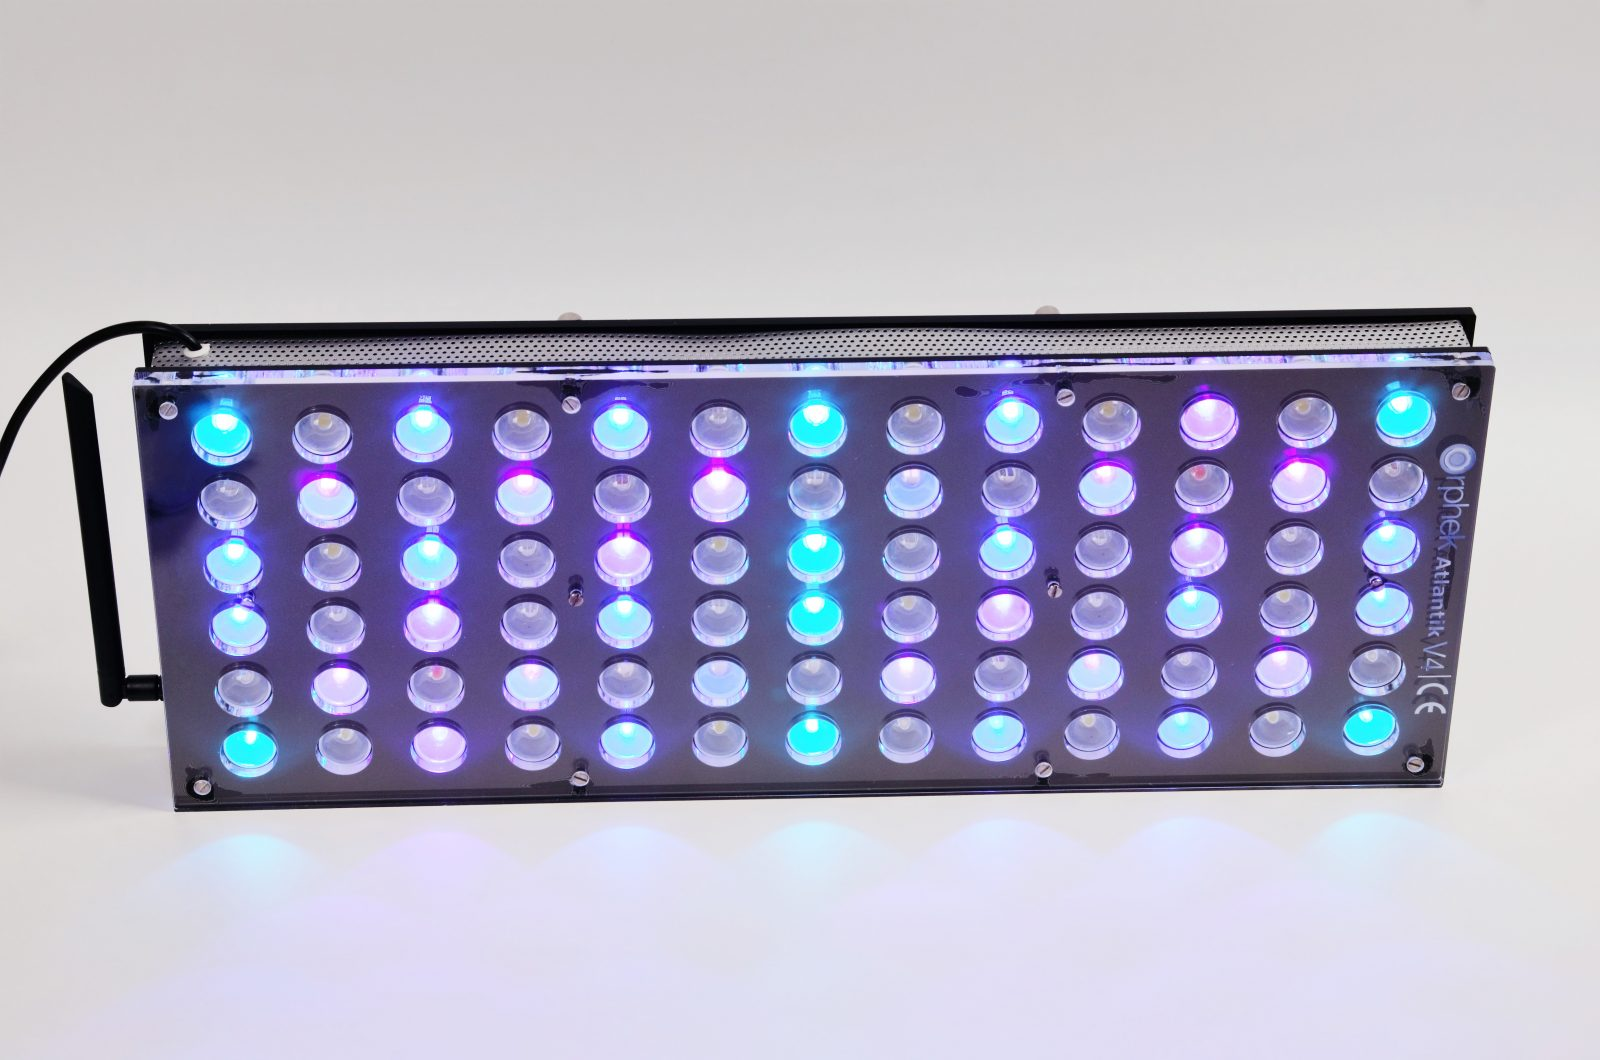 Orphek-Aquarium-LED-Lighting-Reef-Atlantik-V4-light-on-channel 2+3